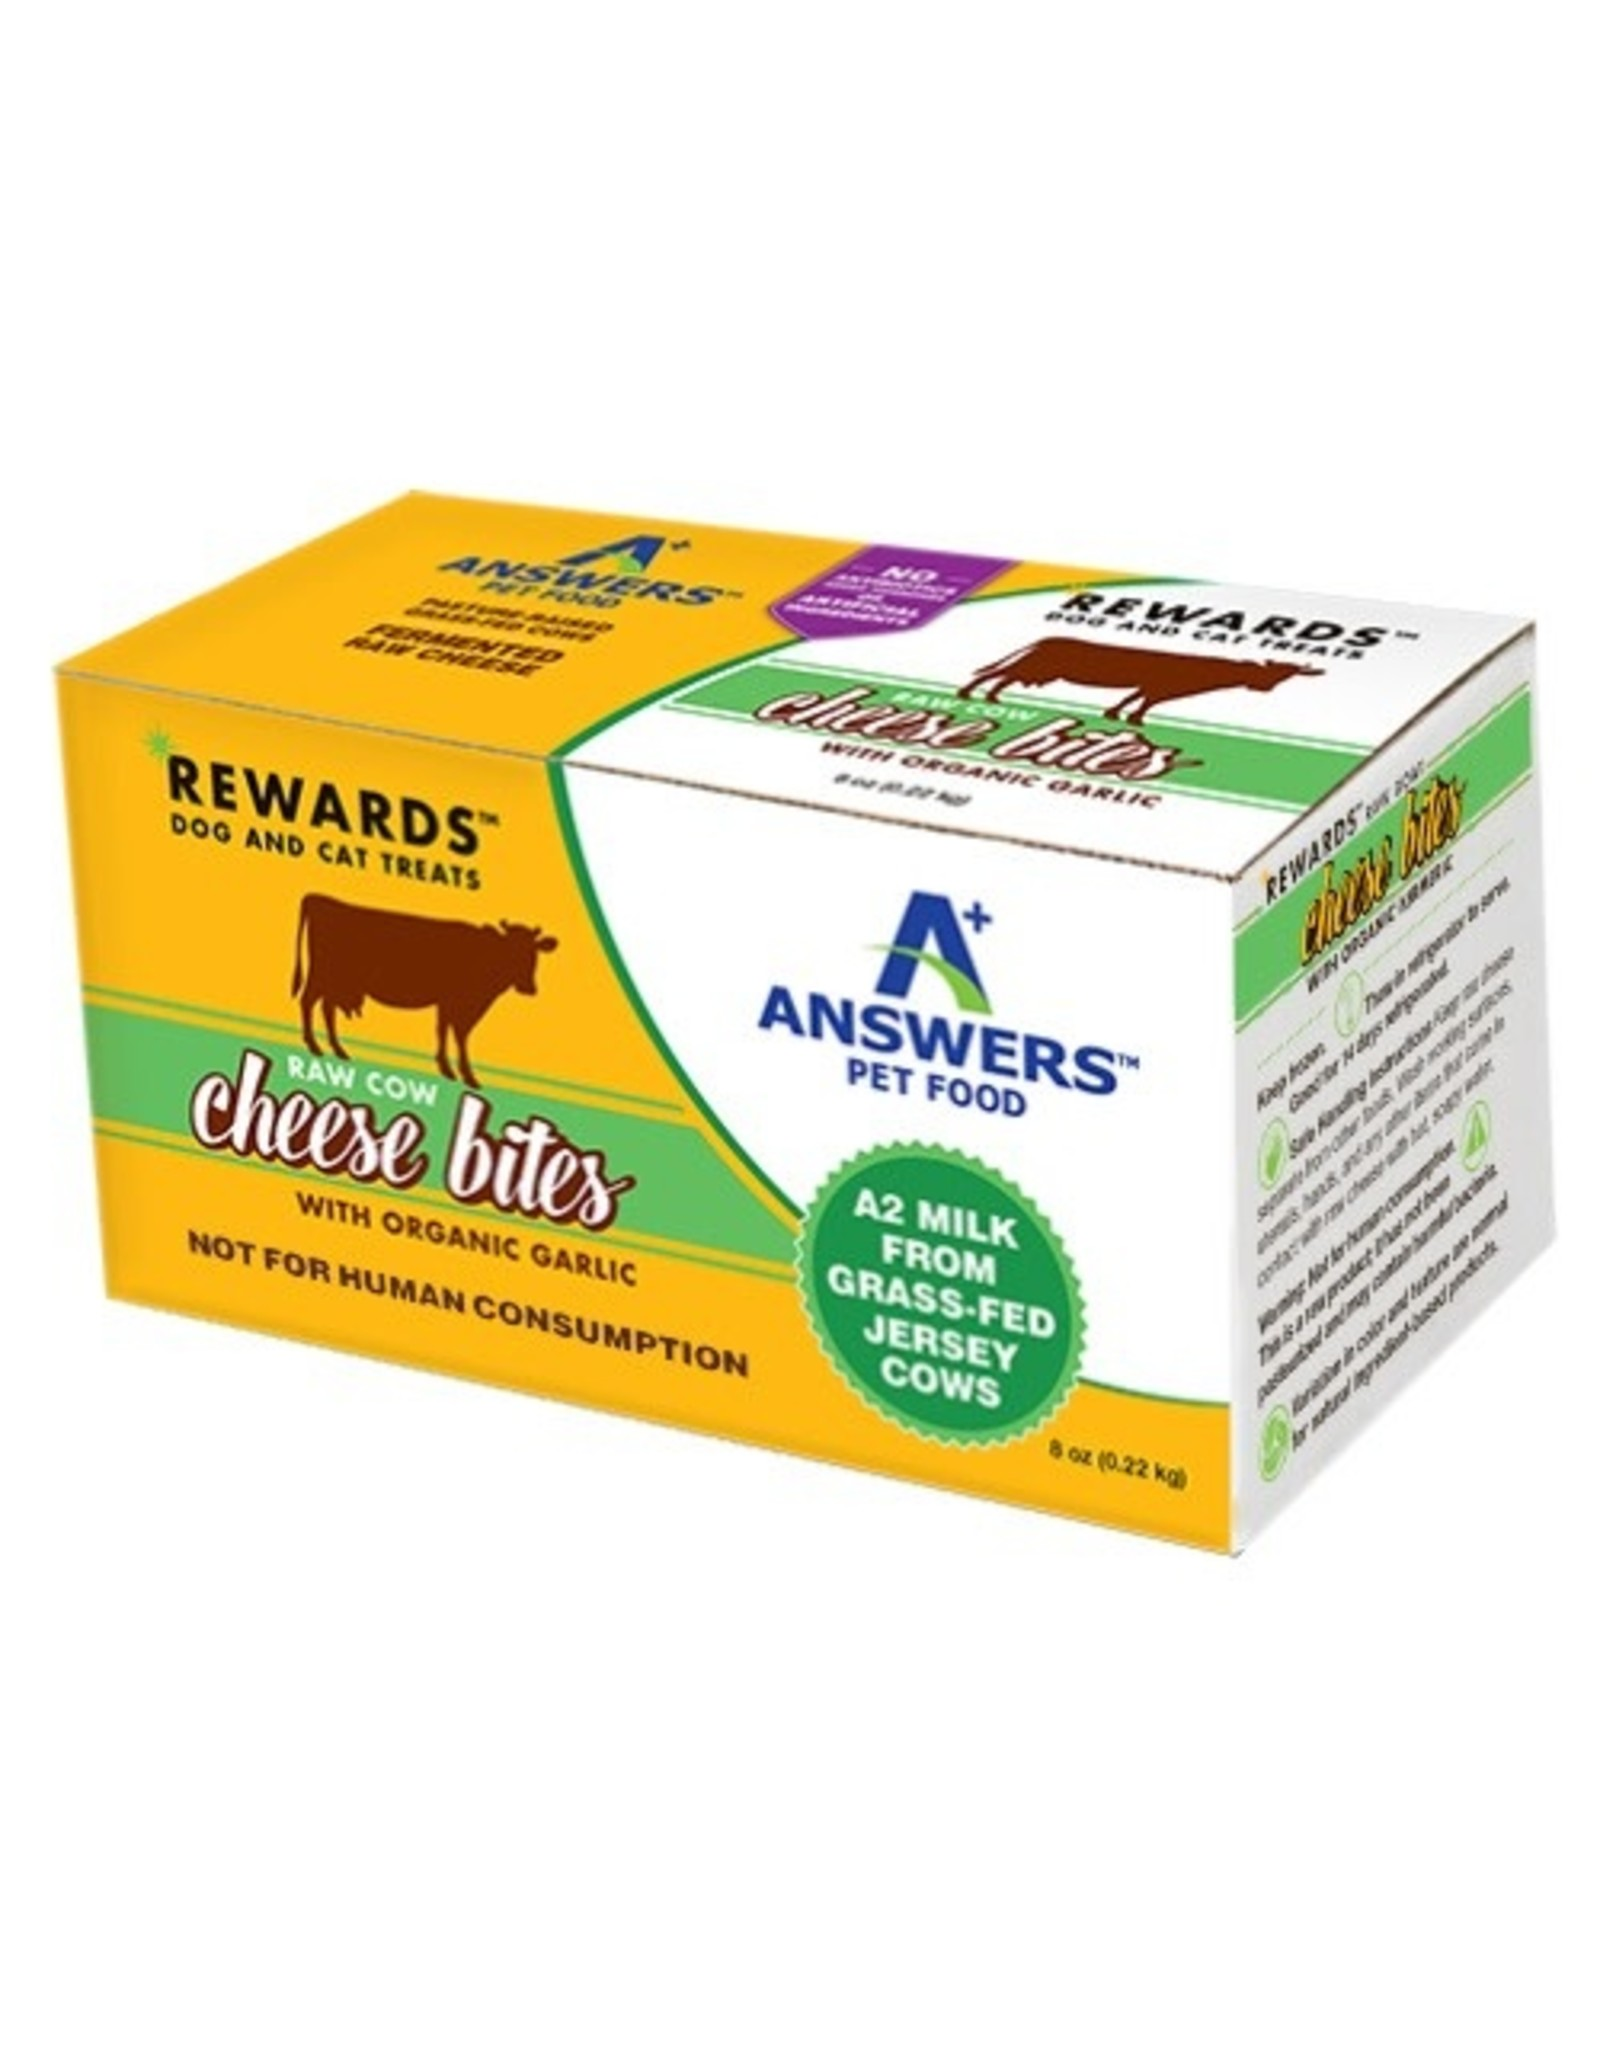 Answers Pet Food ANSWERS RAW COW CHEESE BITES WITH ORGANIC GARLIC 8OZ